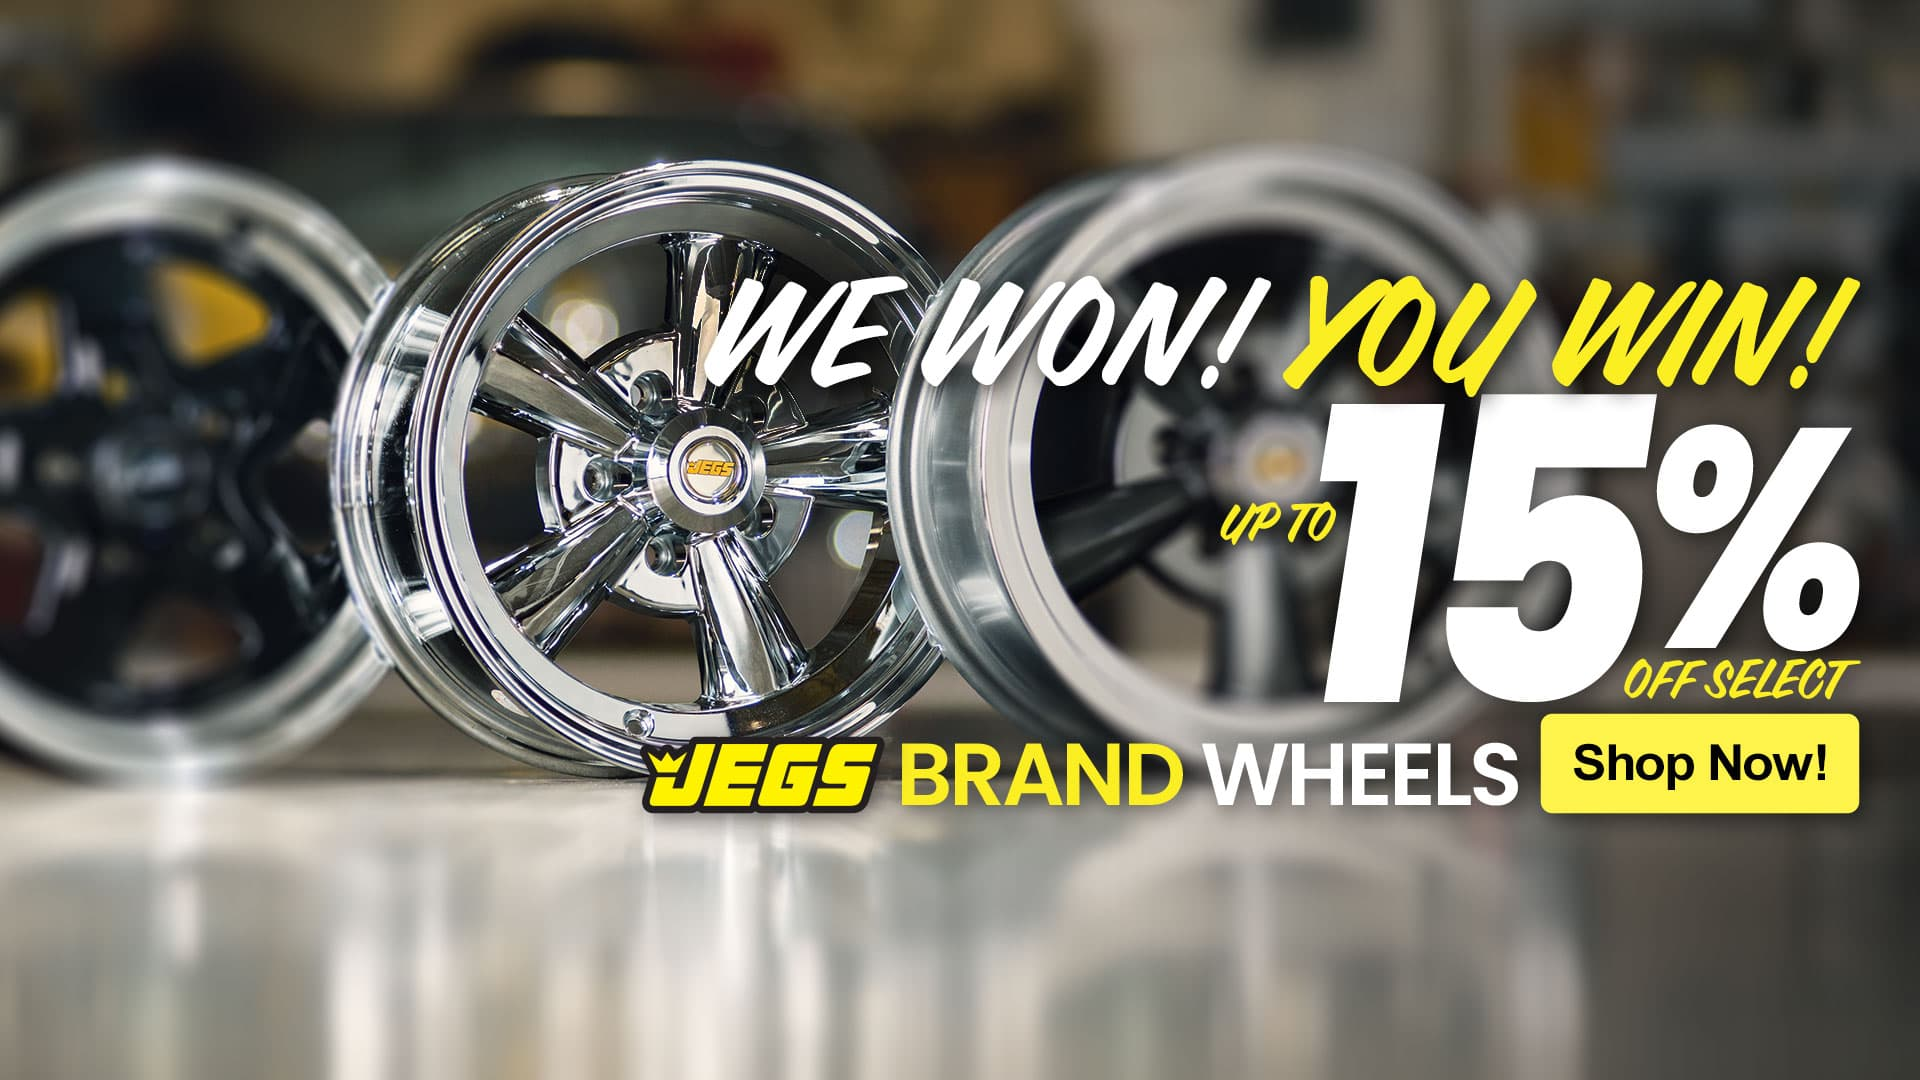 Save 15% off JEGS Brand Wheels